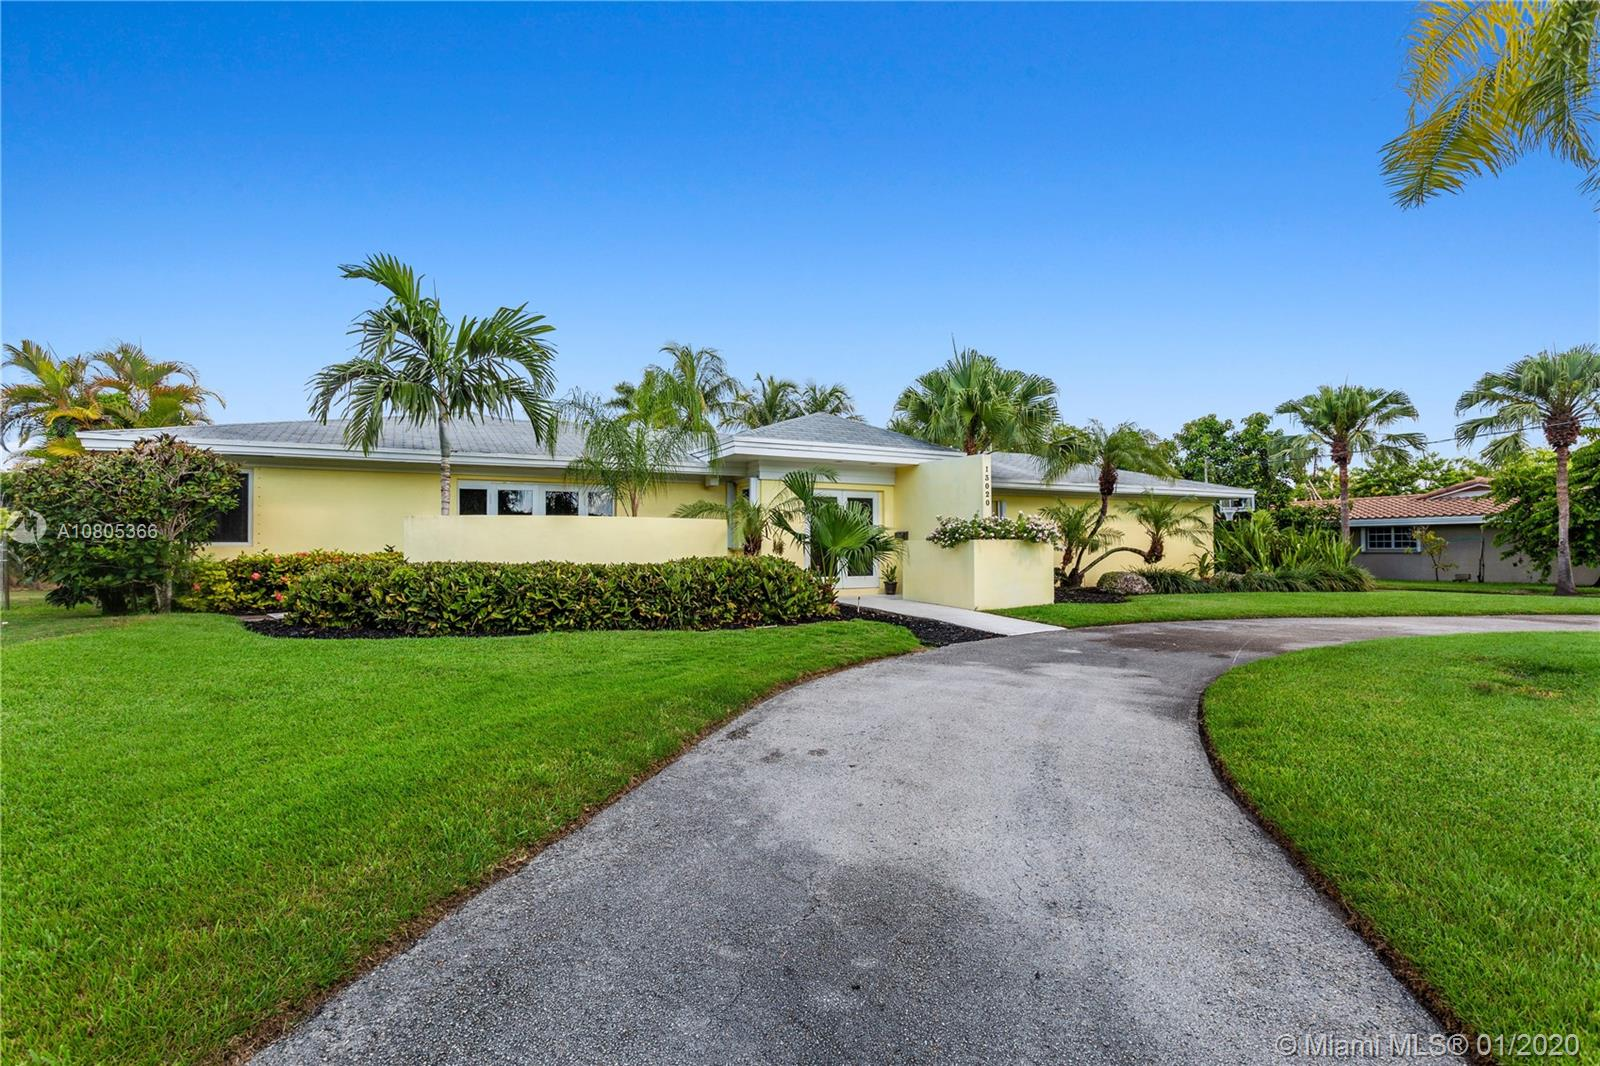 13020 SW 69th Ave - Pinecrest, Florida